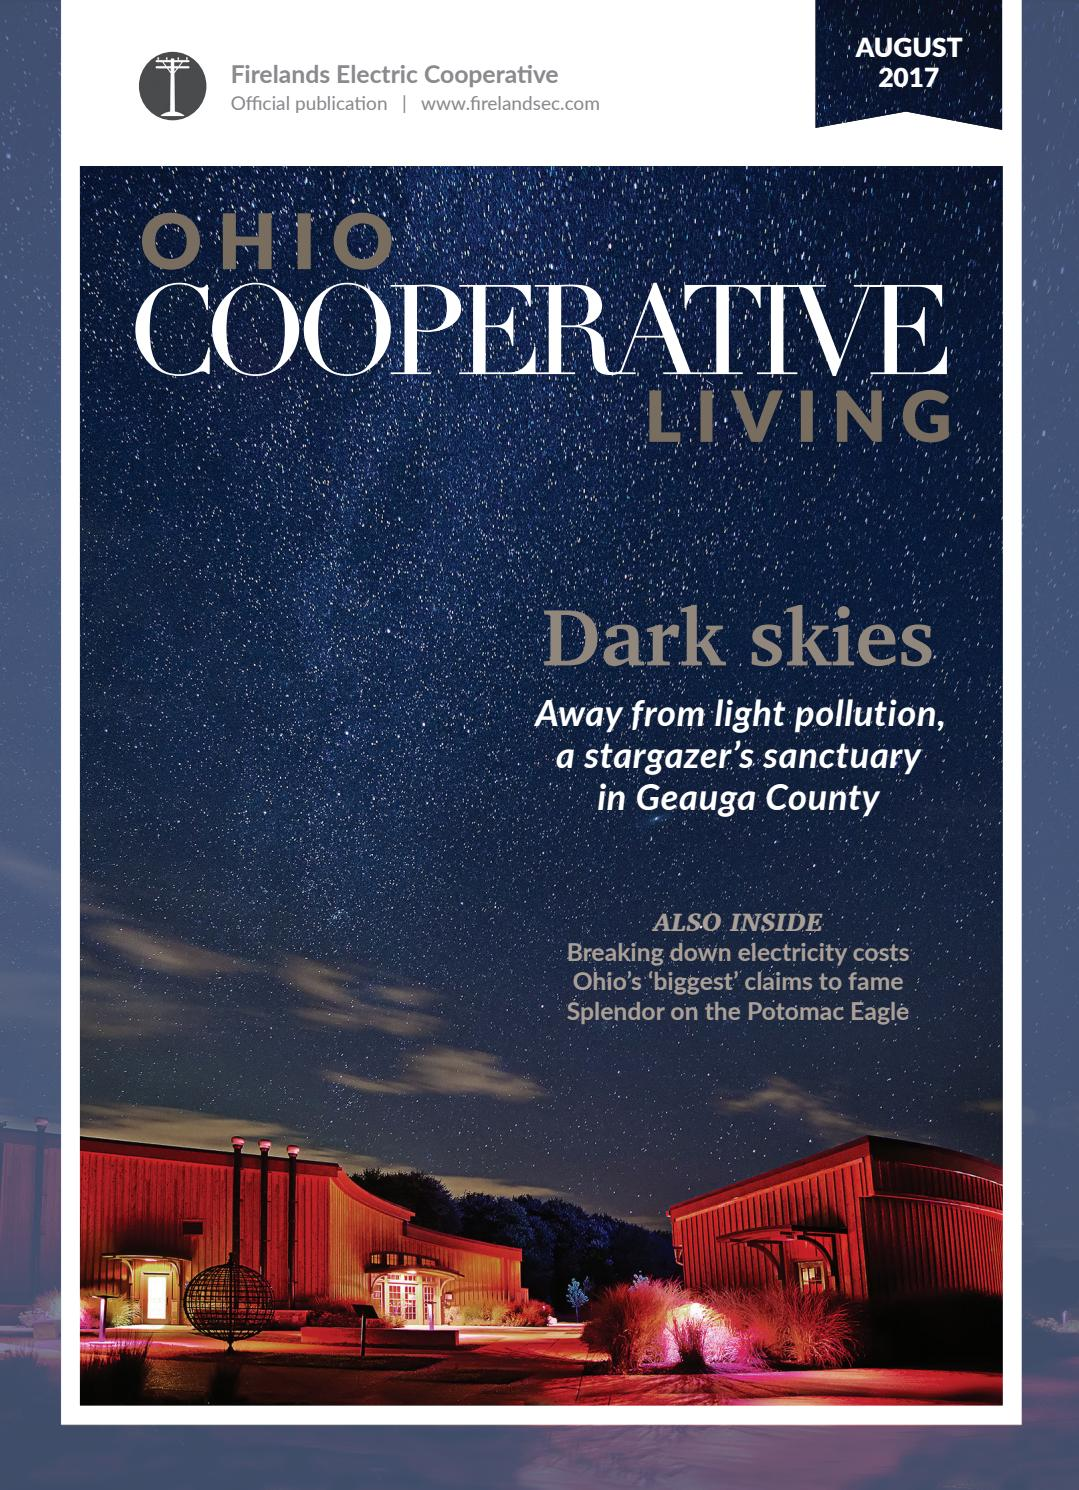 Square aluminum colonial columns prices amp ordering hoover - Ohio Cooperative Living August 2017 Firelands By Ohio Cooperative Living Issuu